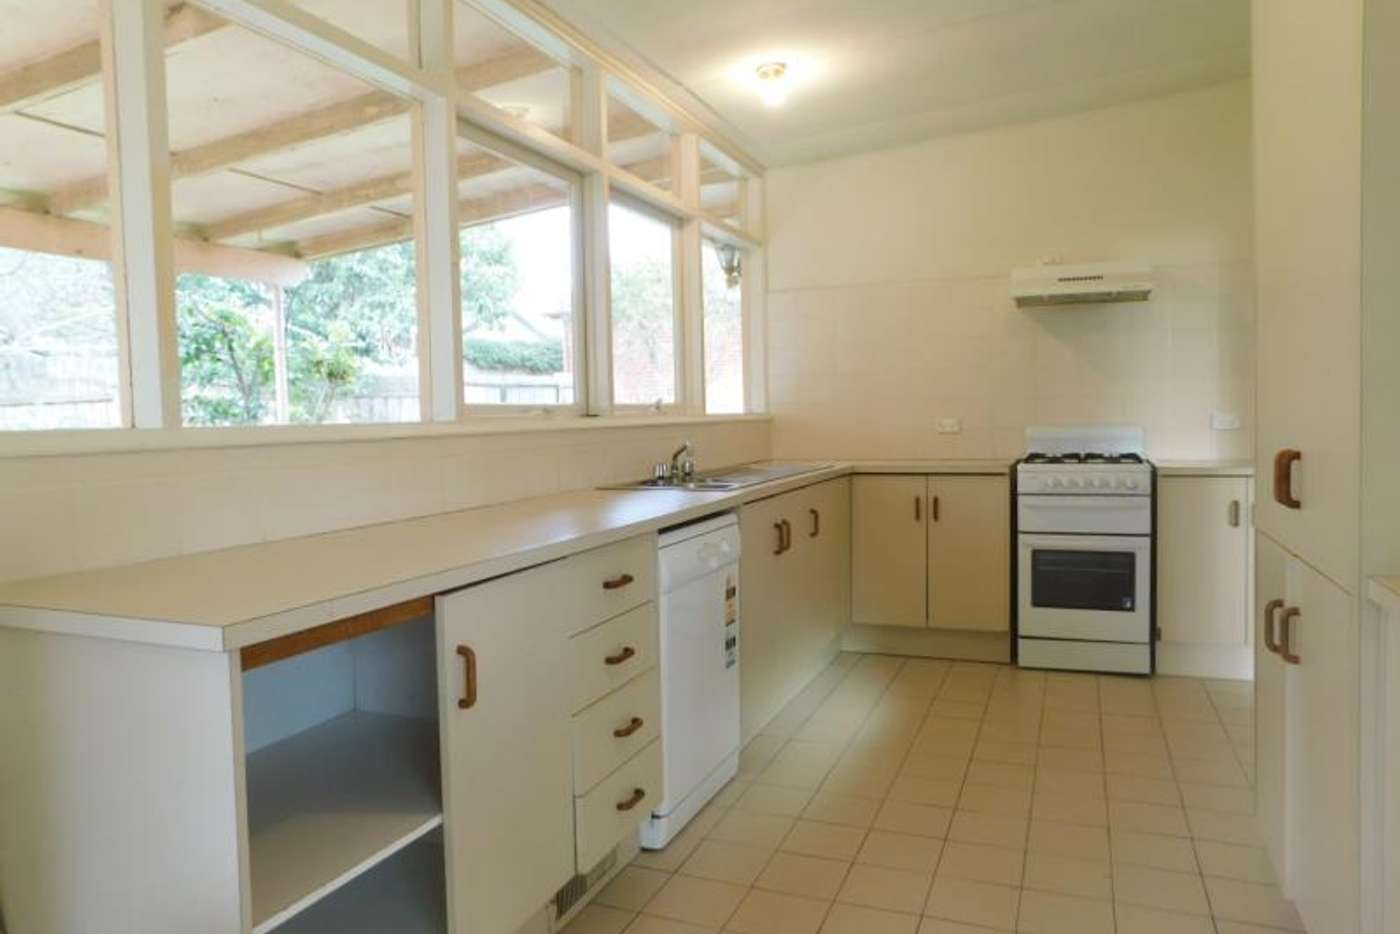 Main view of Homely unit listing, 3/19 Latham Street, Ivanhoe VIC 3079